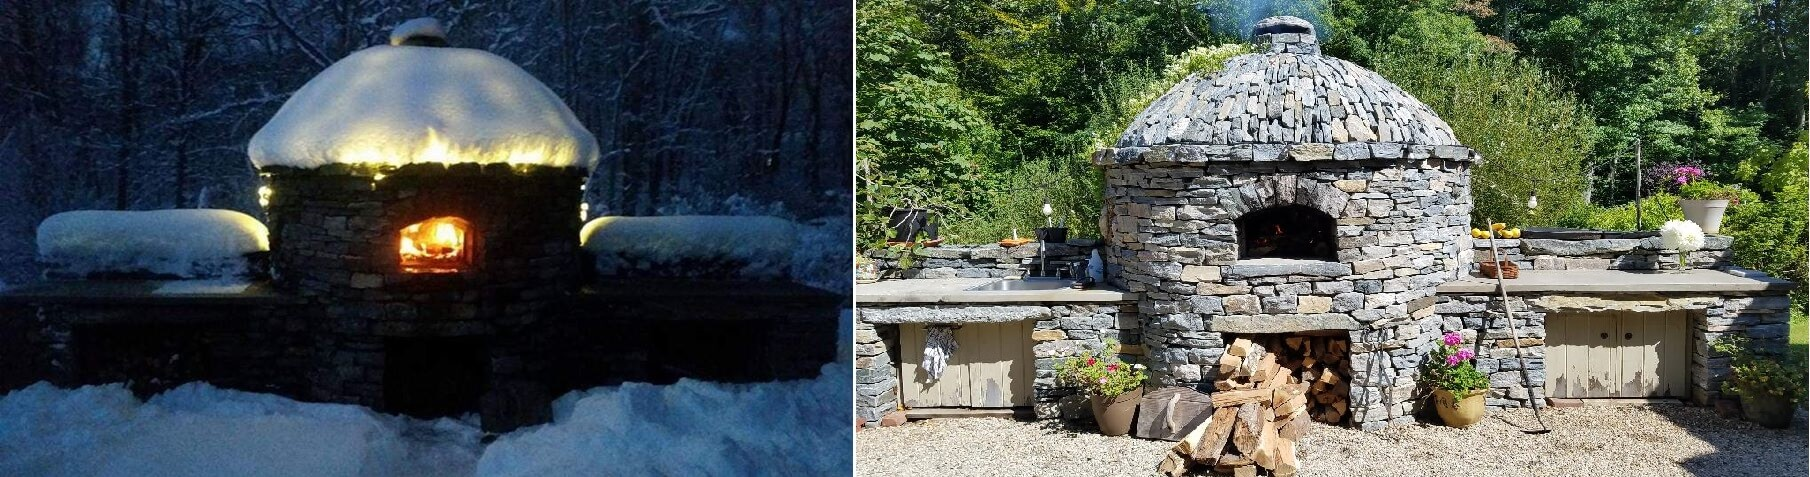 Pizza Oven in Winter and Summer